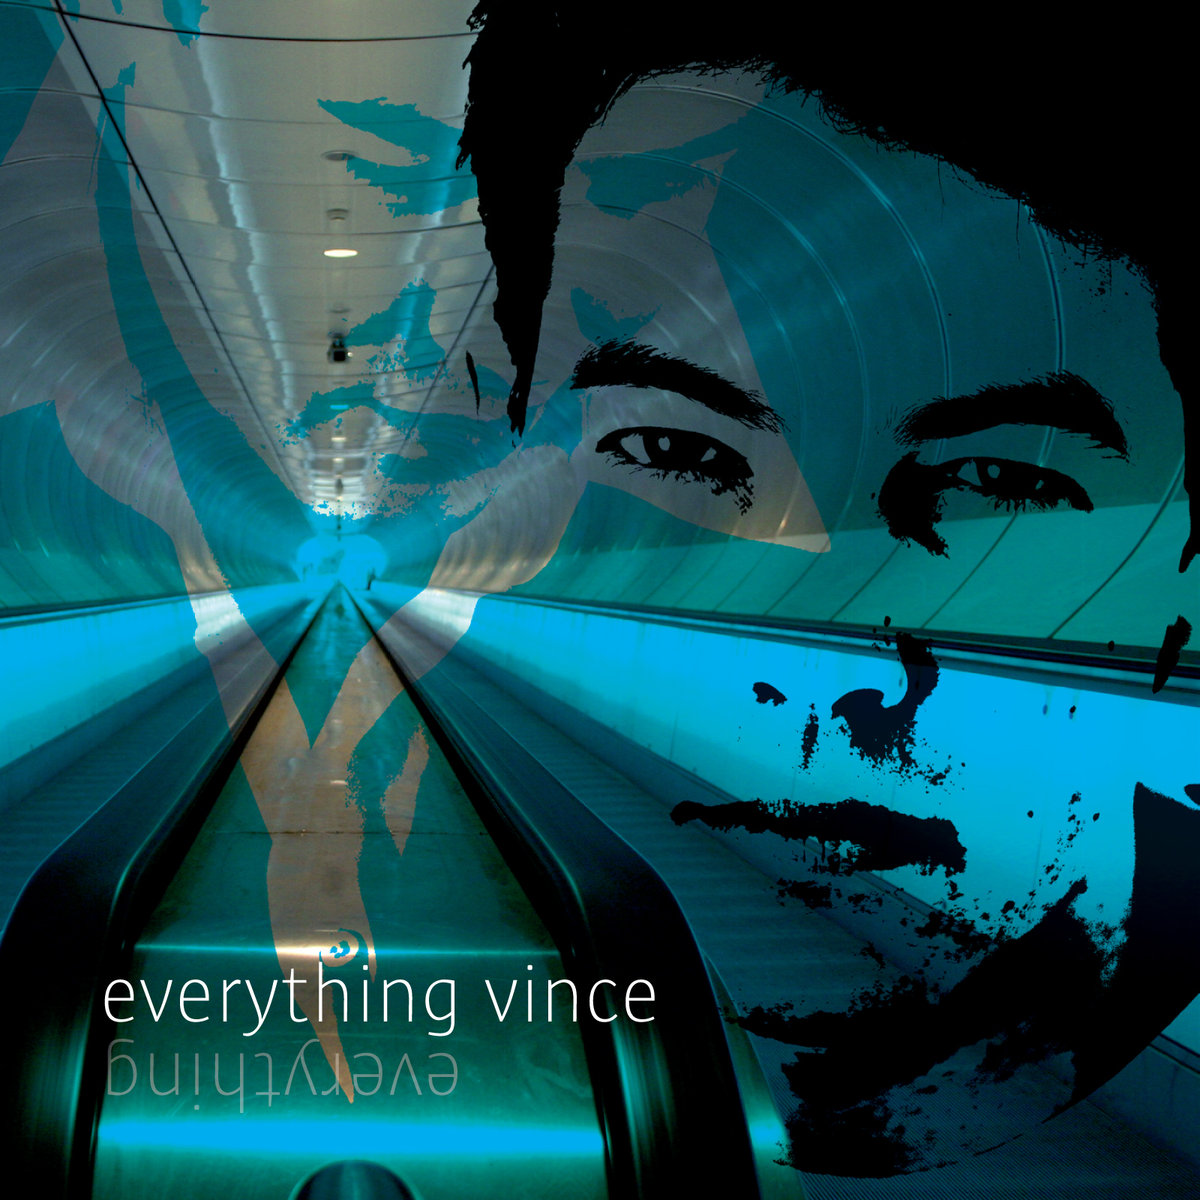 Vince - You @ 'Everything' album (pop, pop punk)